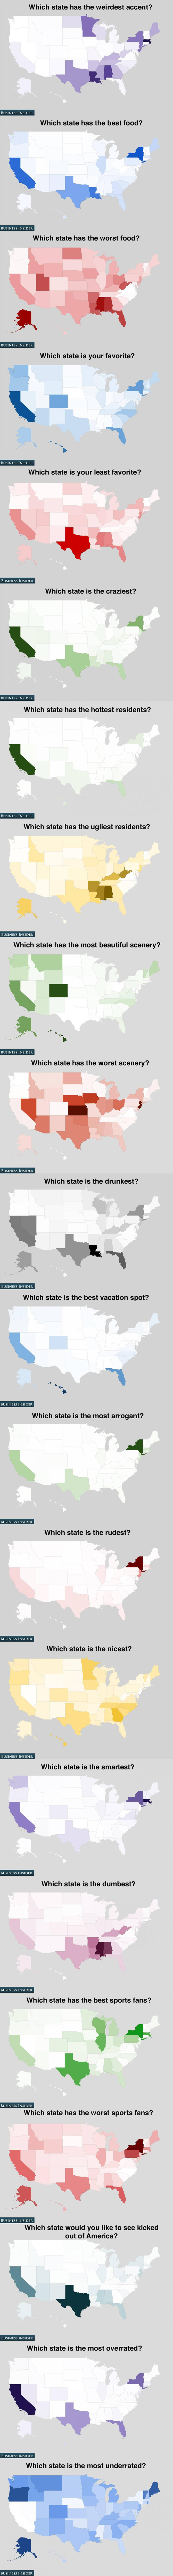 US Maps on how Americans feel about each state